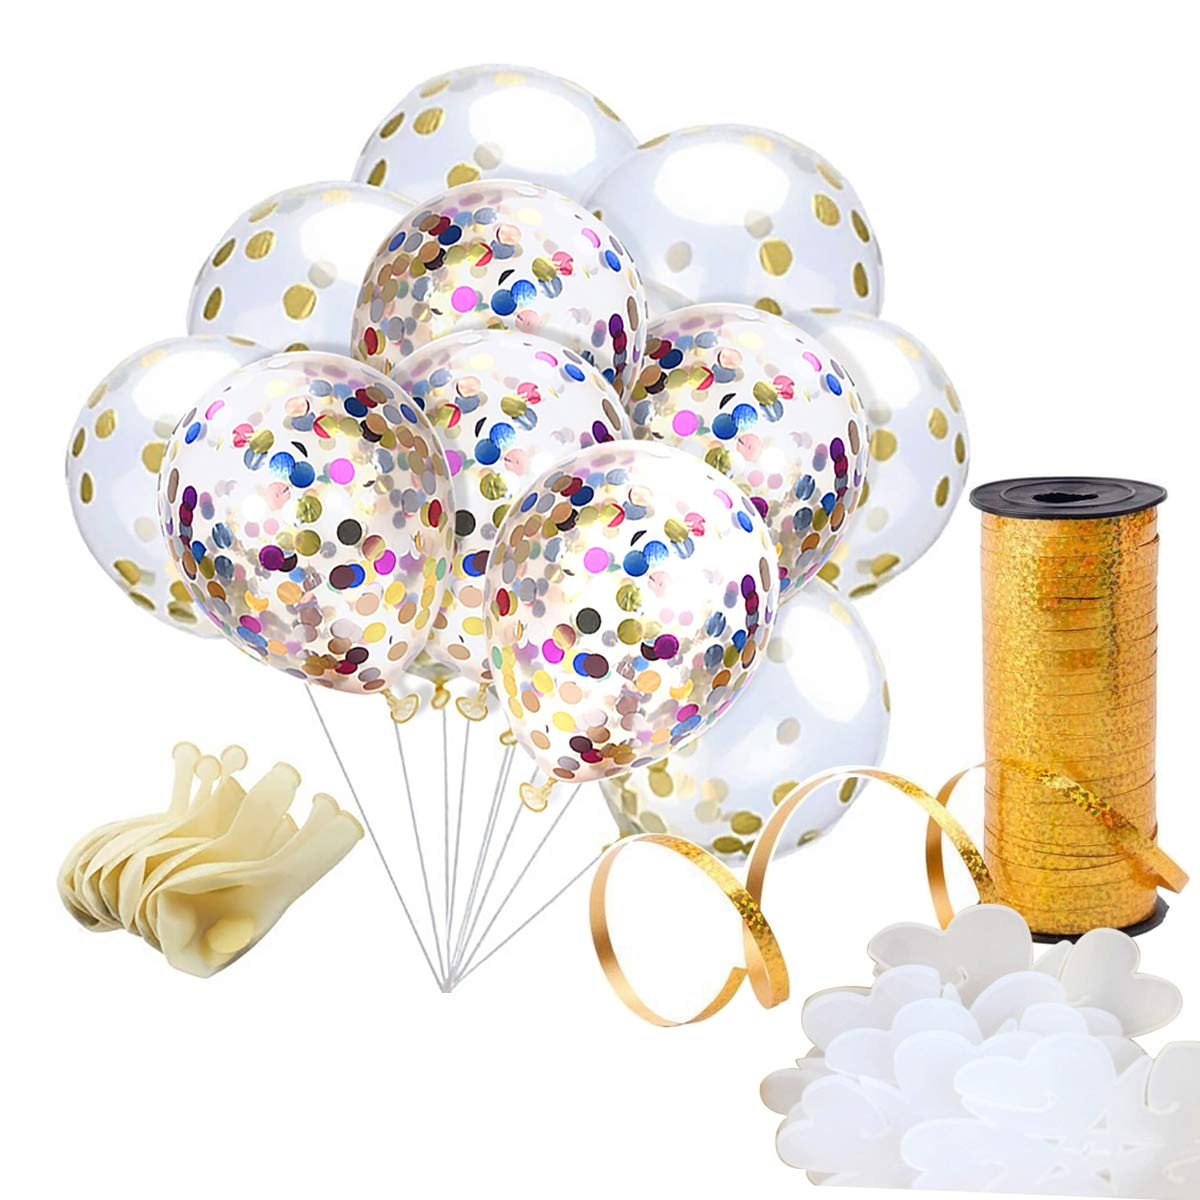 newer yoker 20 pcs confetti balloons 12 inches latex party balloons